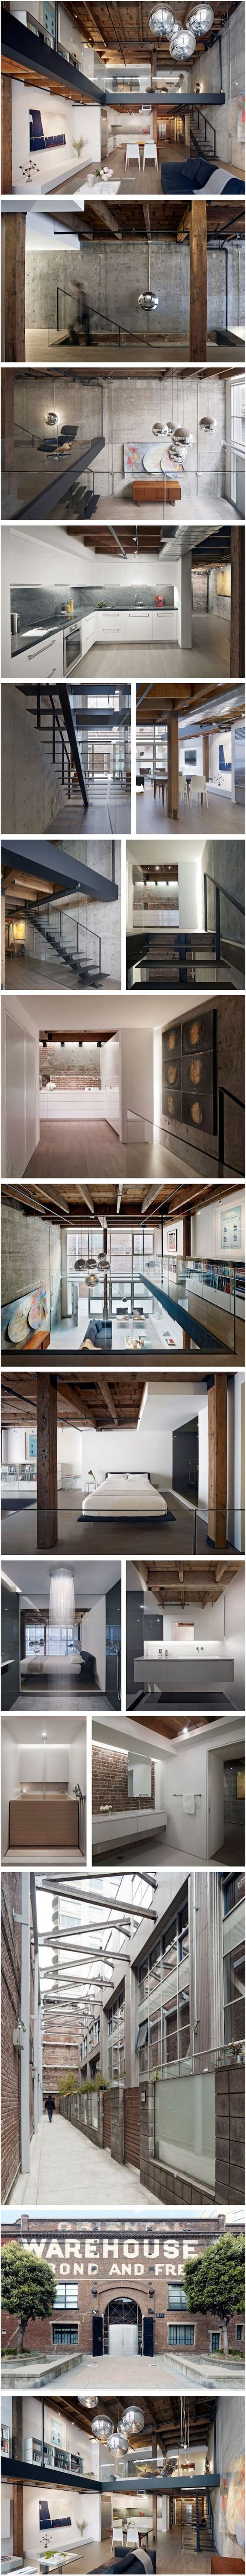 Interior design and architecture for a loft unit in San Francisco's Oriental Warehouse Building by EDMONDS + LEE ARCHITECTS. http://www.edmondslee.com/owl.html: